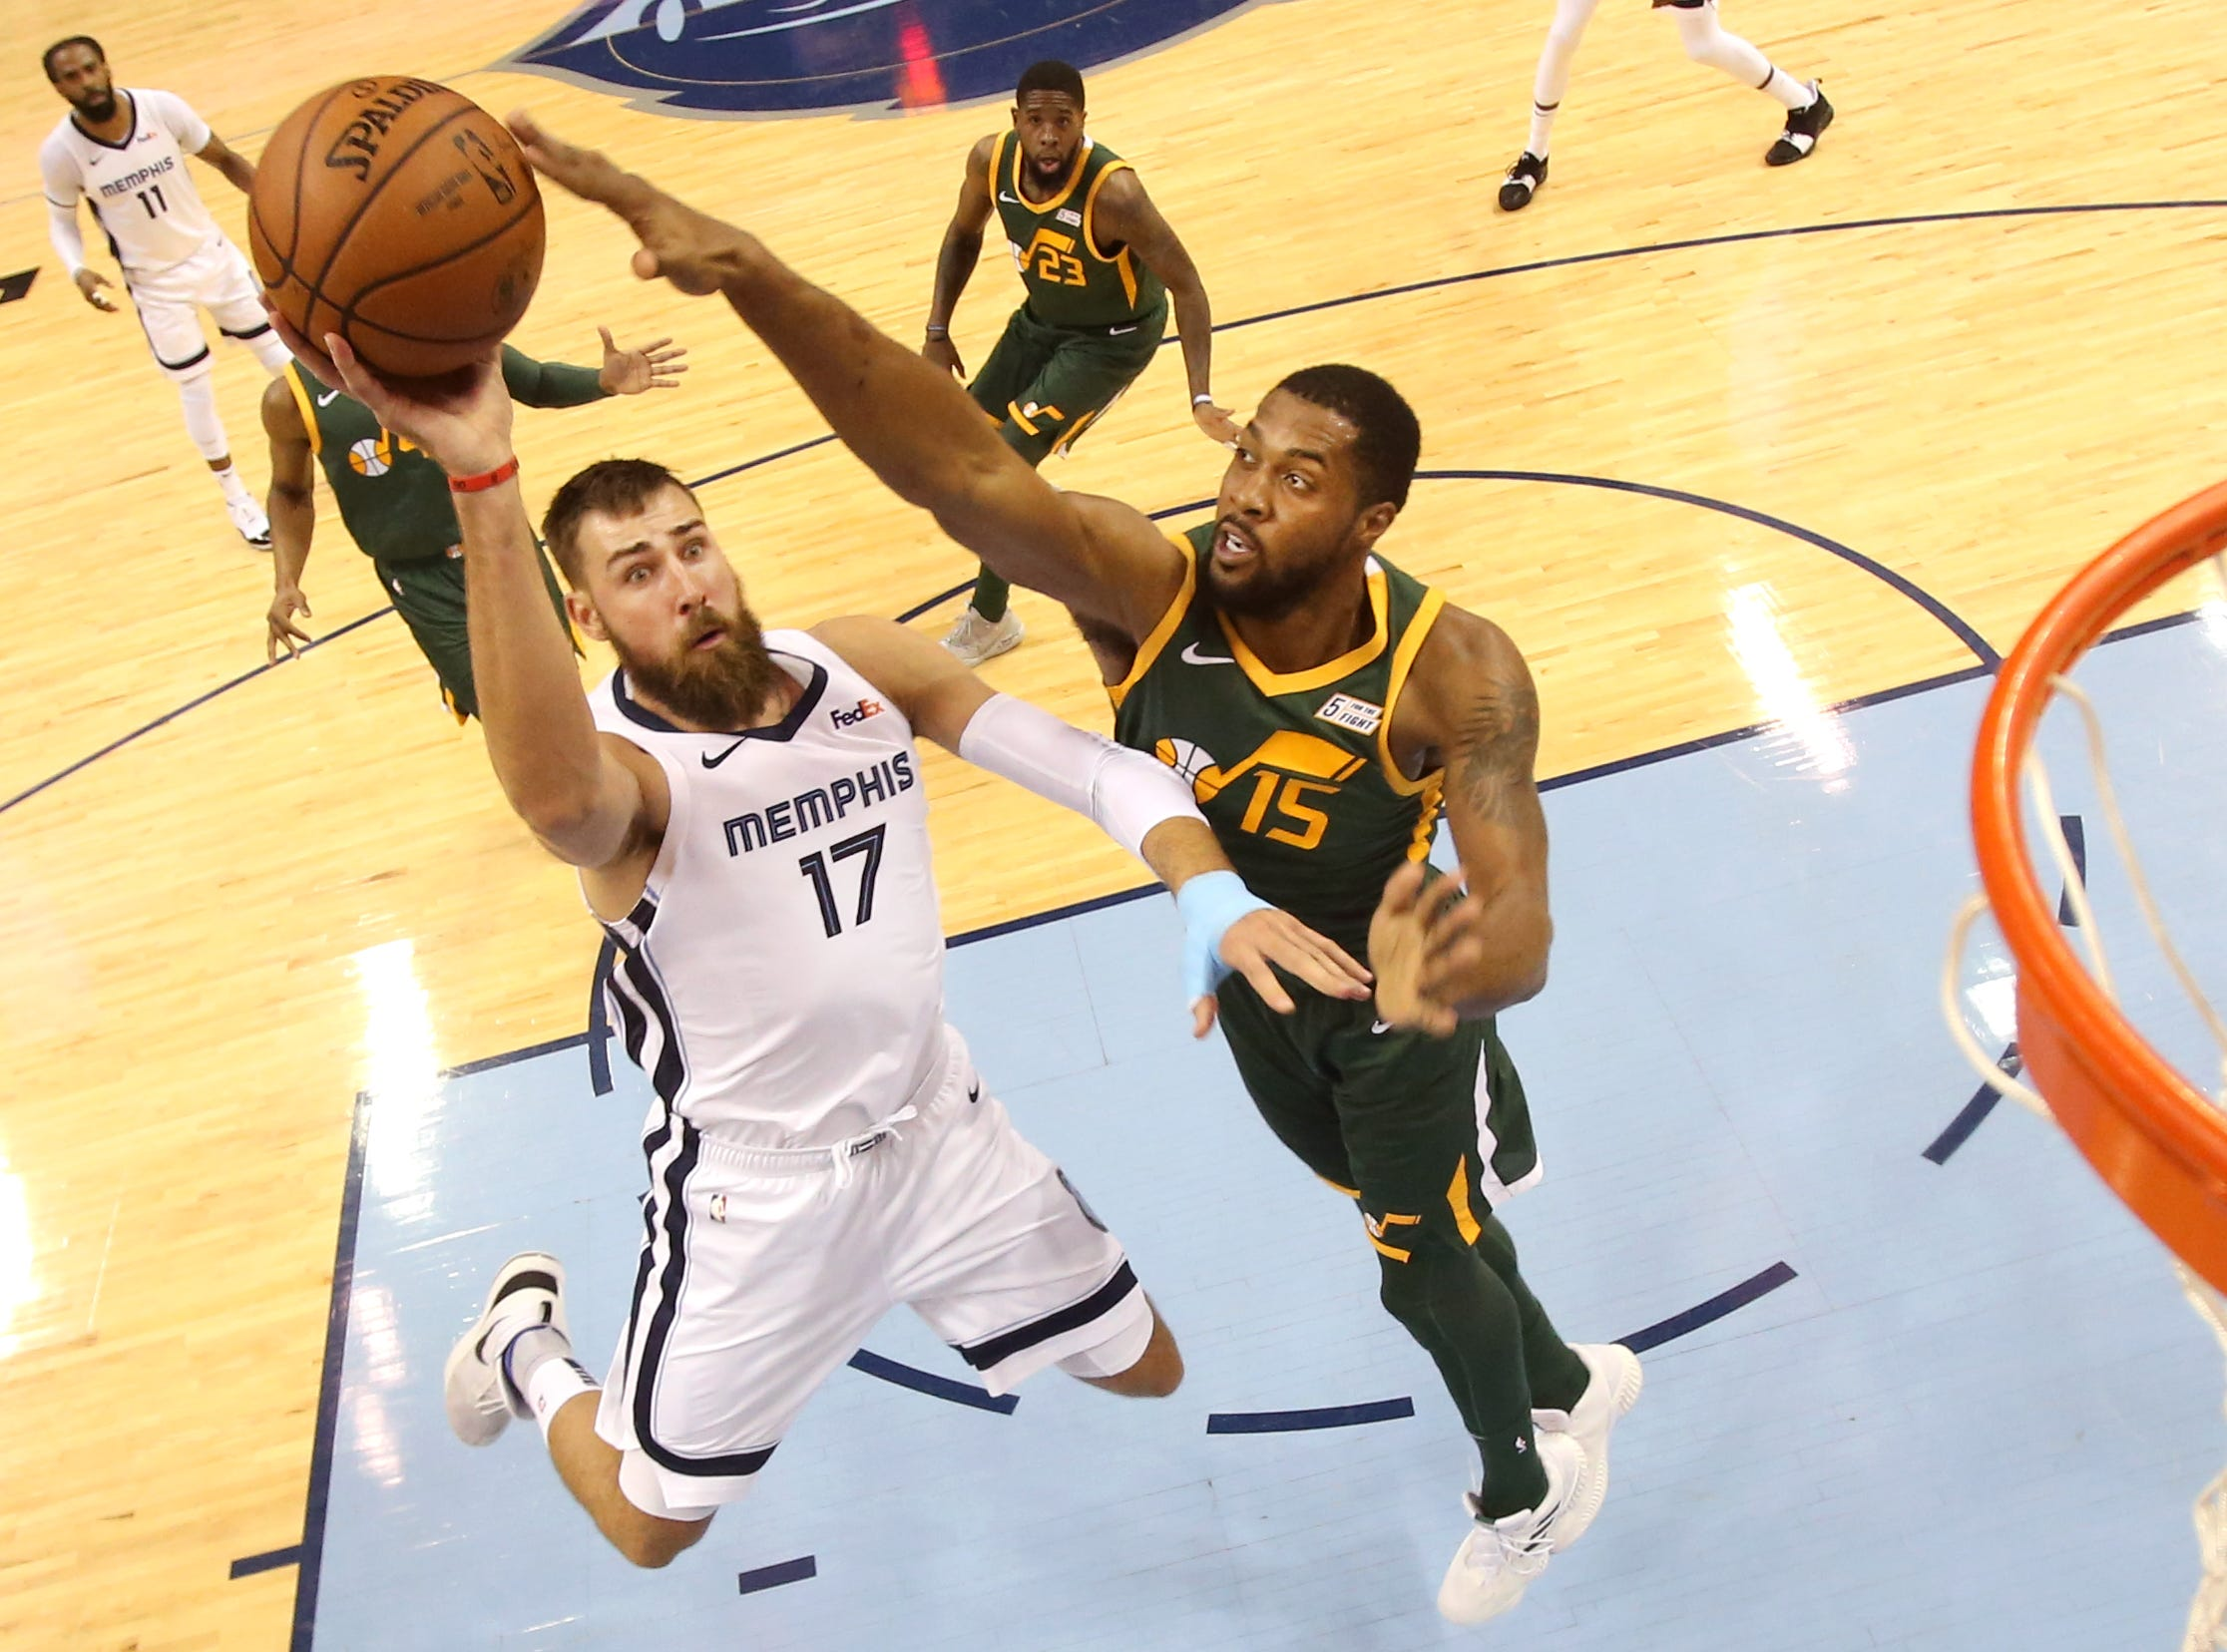 Memphis Grizzlies center Jonas Valanciunas shoots the ball over Utah Jazz forward Derrick Favors during their game at the FedExForum on Friday, March 8, 2019.